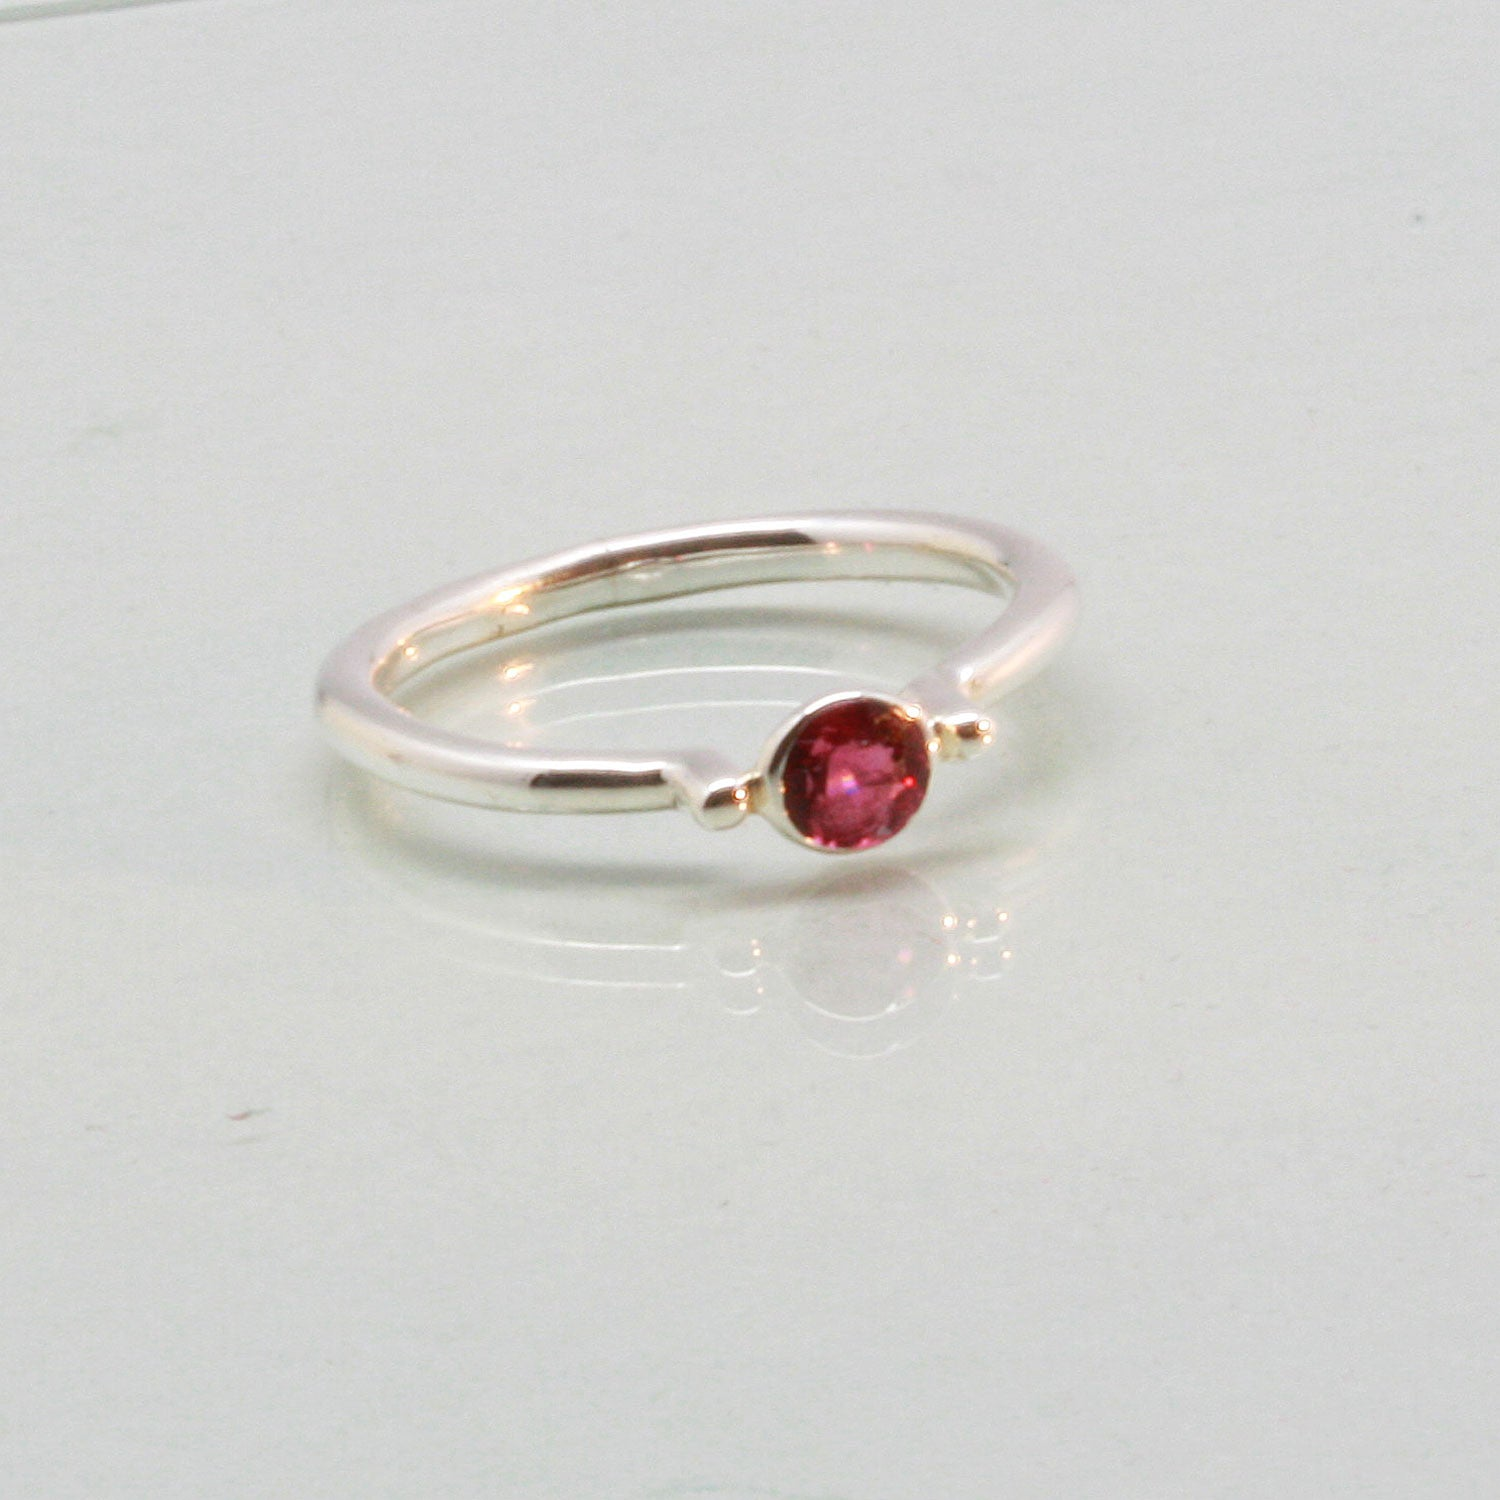 Test product Rubellite Tourmaline Ring not for sale Panjshir Afghanistan